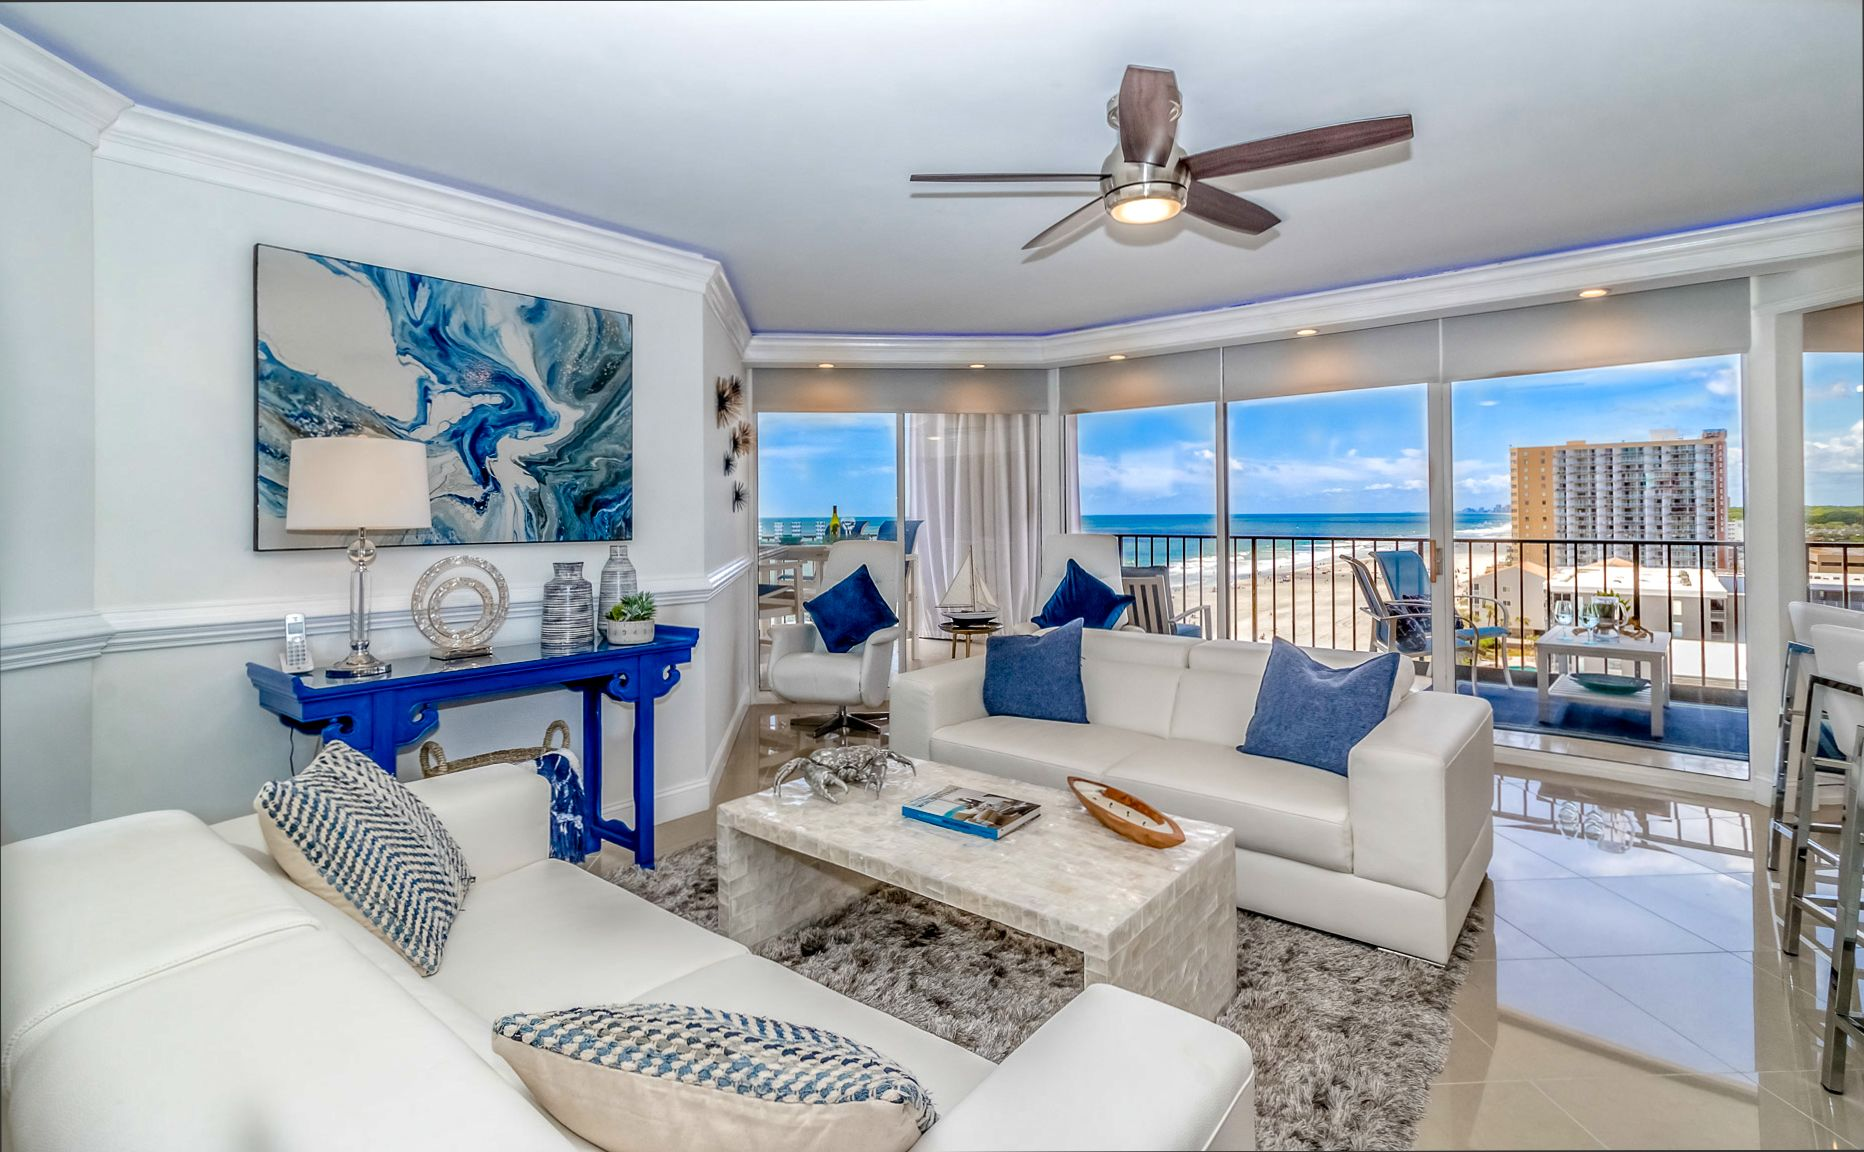 5. Living Room with Ocean Views VRBO